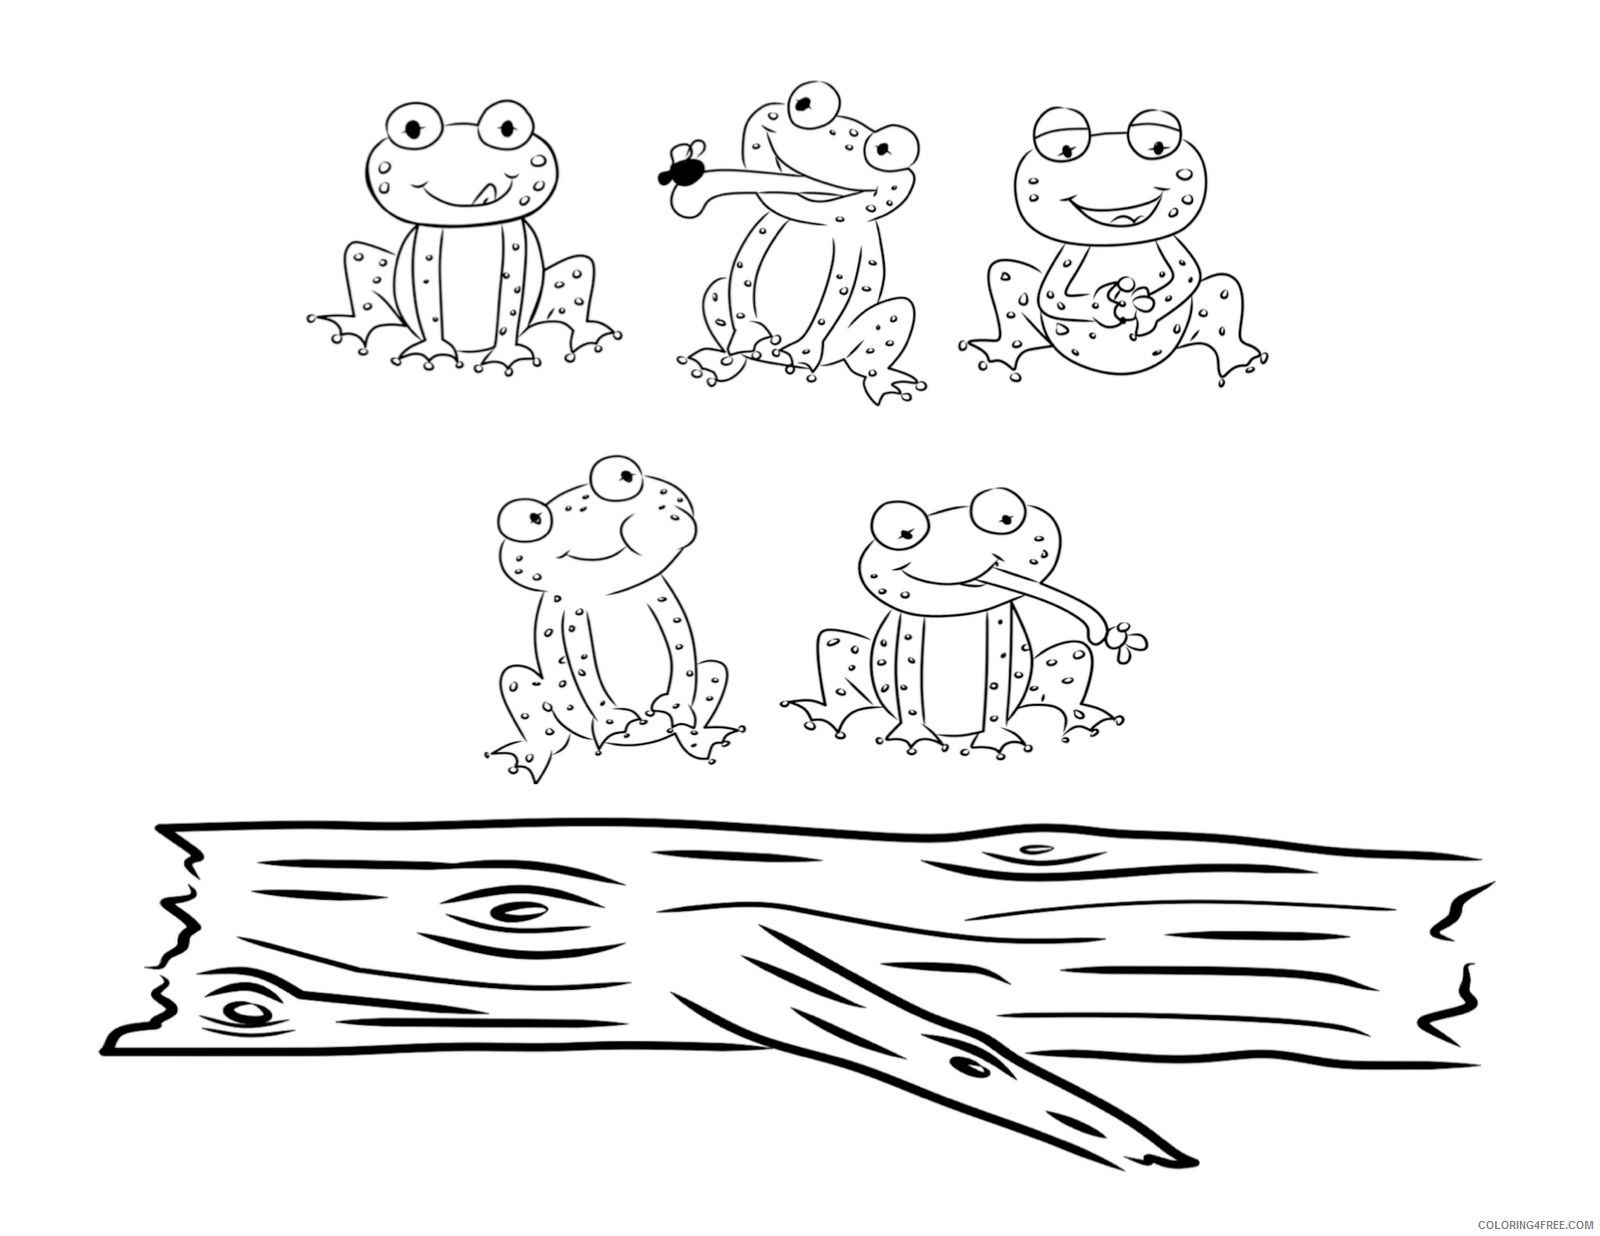 Frog Coloring Pages bust out your crayons five Printable Coloring4free